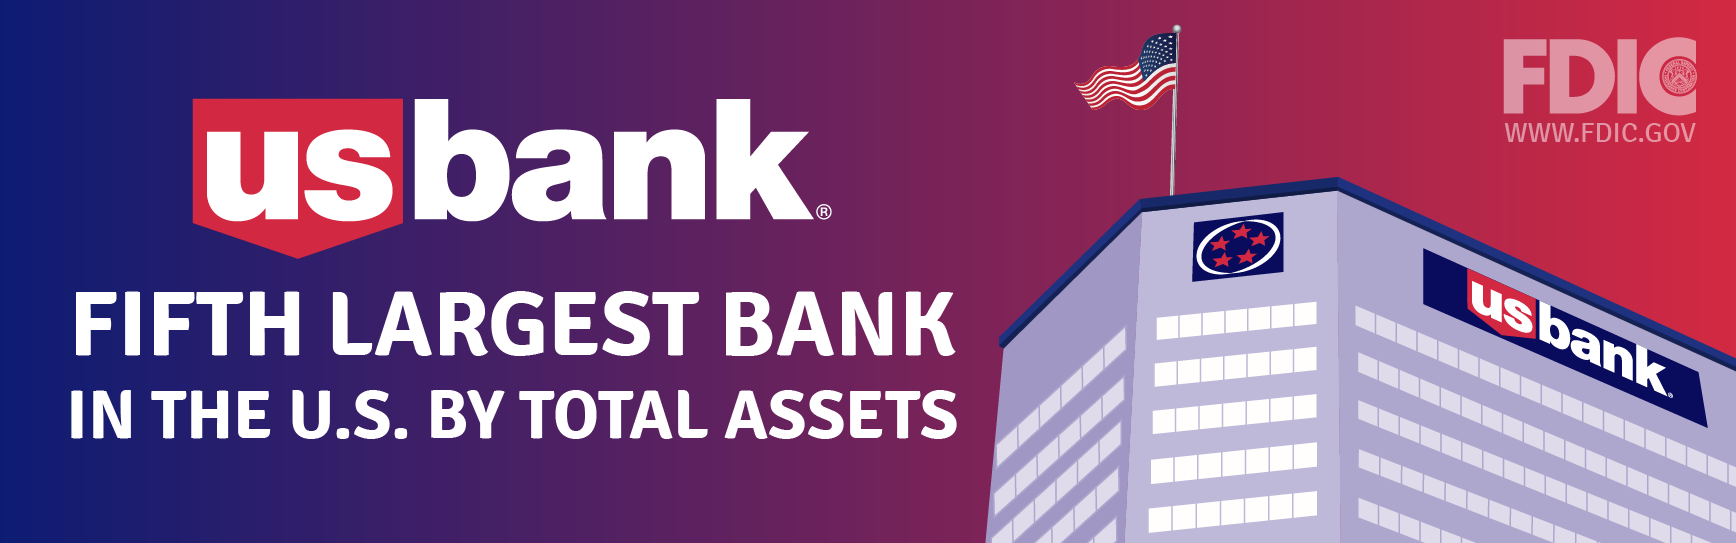 Fifth Largest Bank in the U.S. by total assets